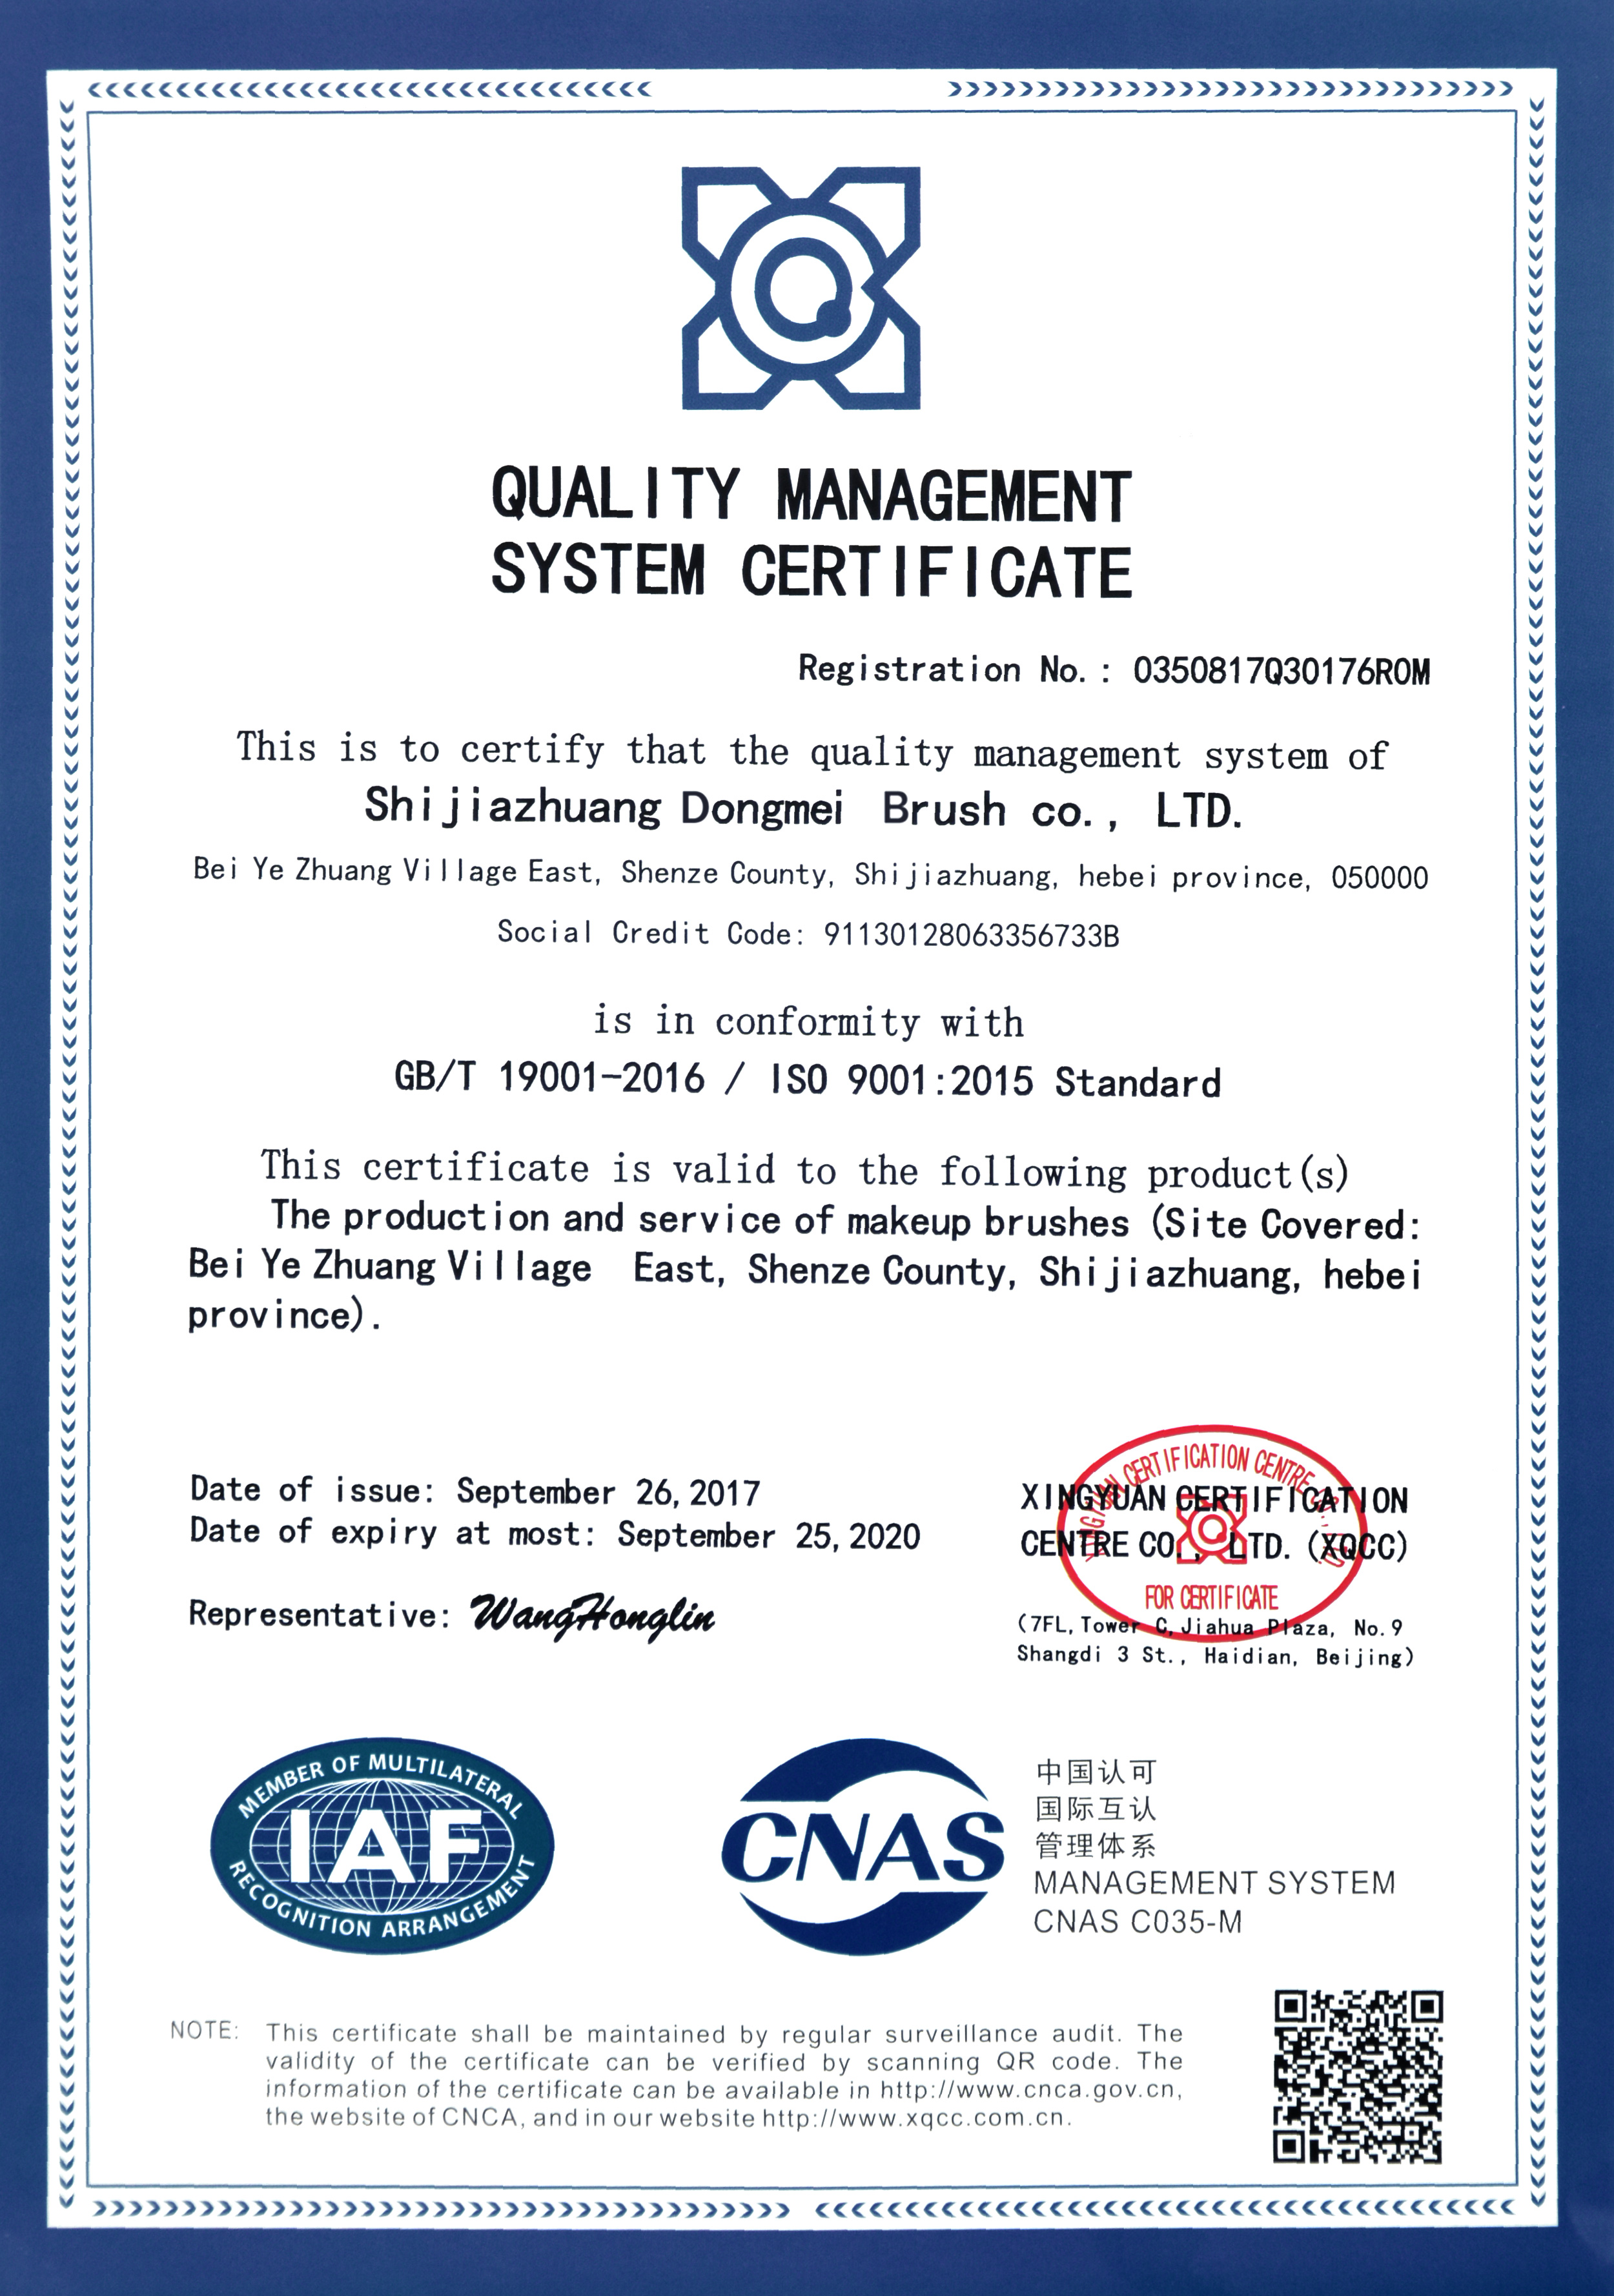 ISO9001--control the product quality and manage.